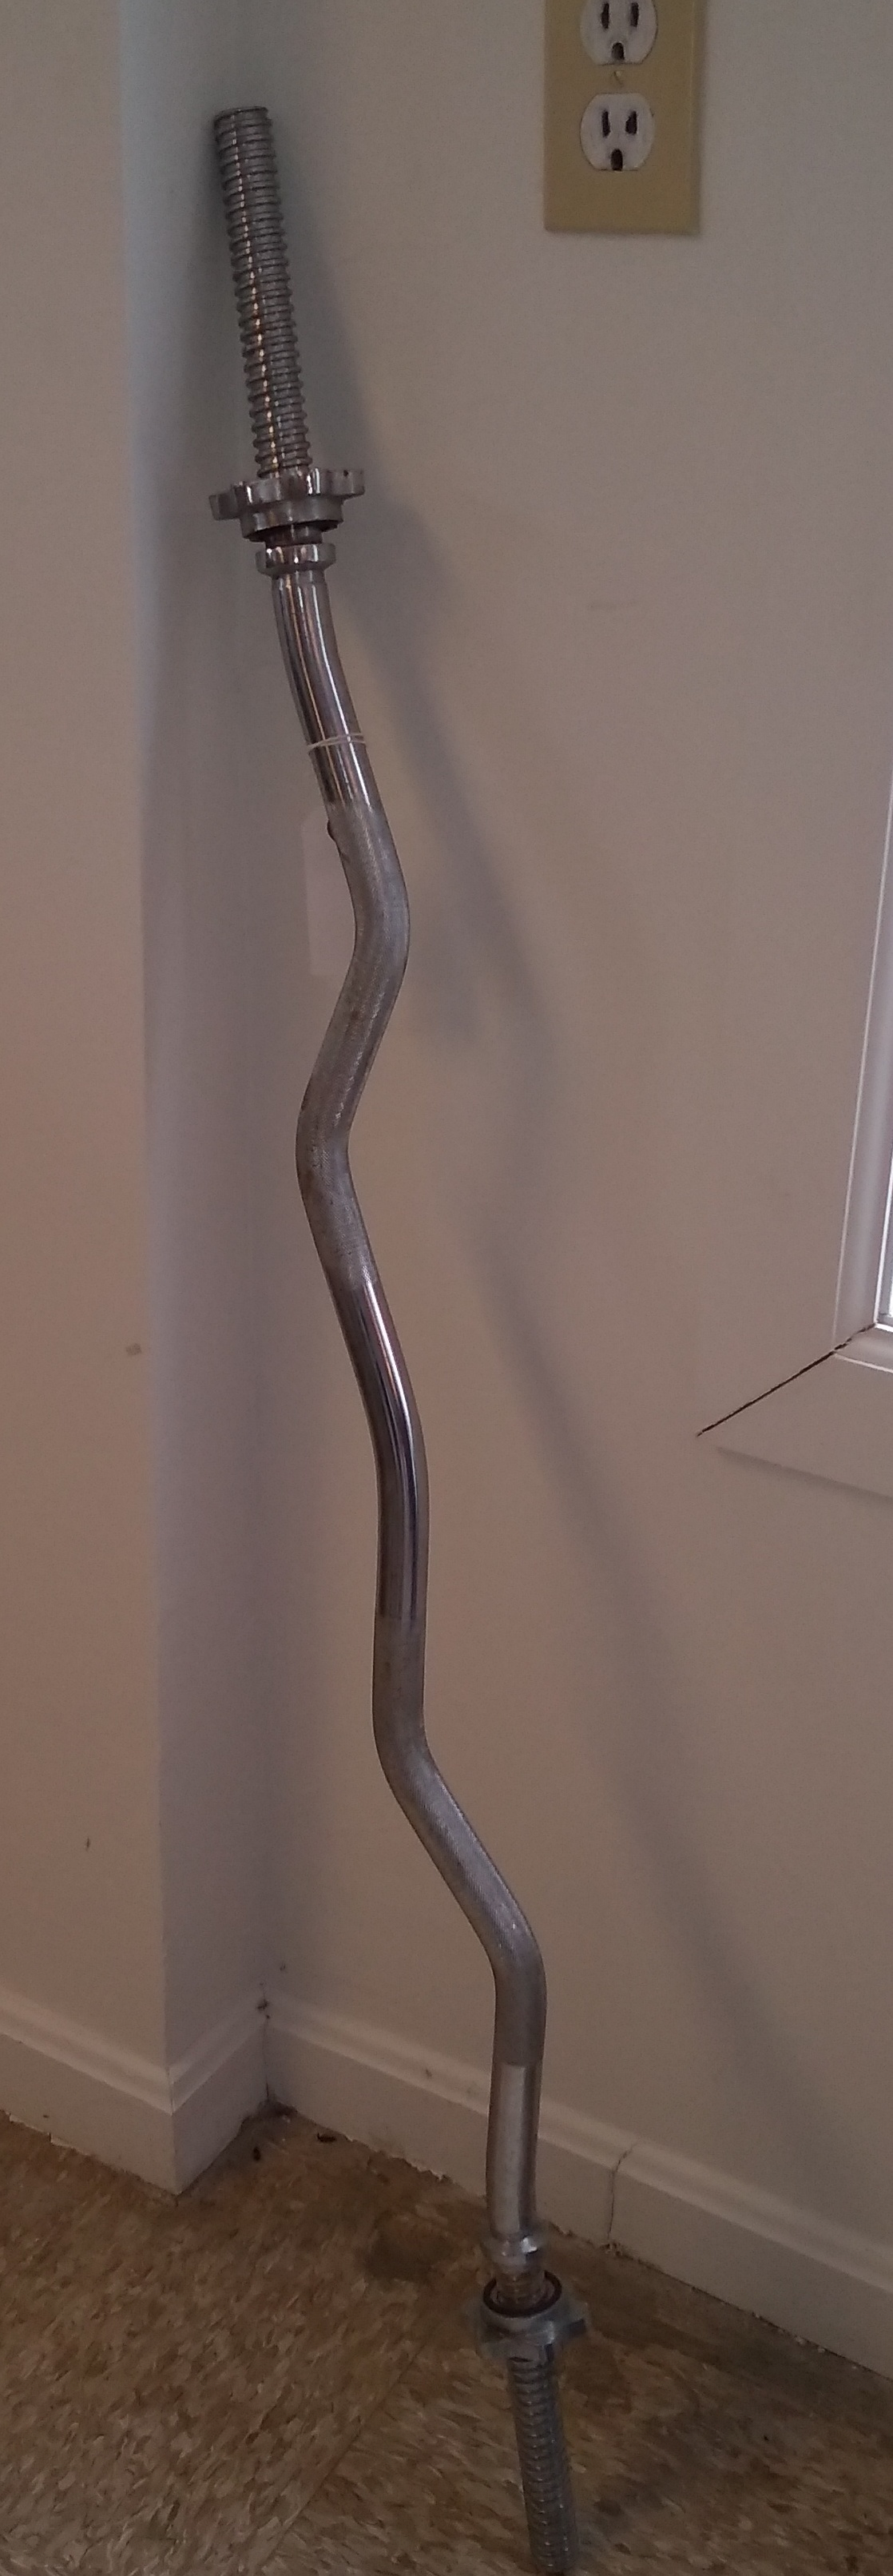 CURVED WEIGHT BAR